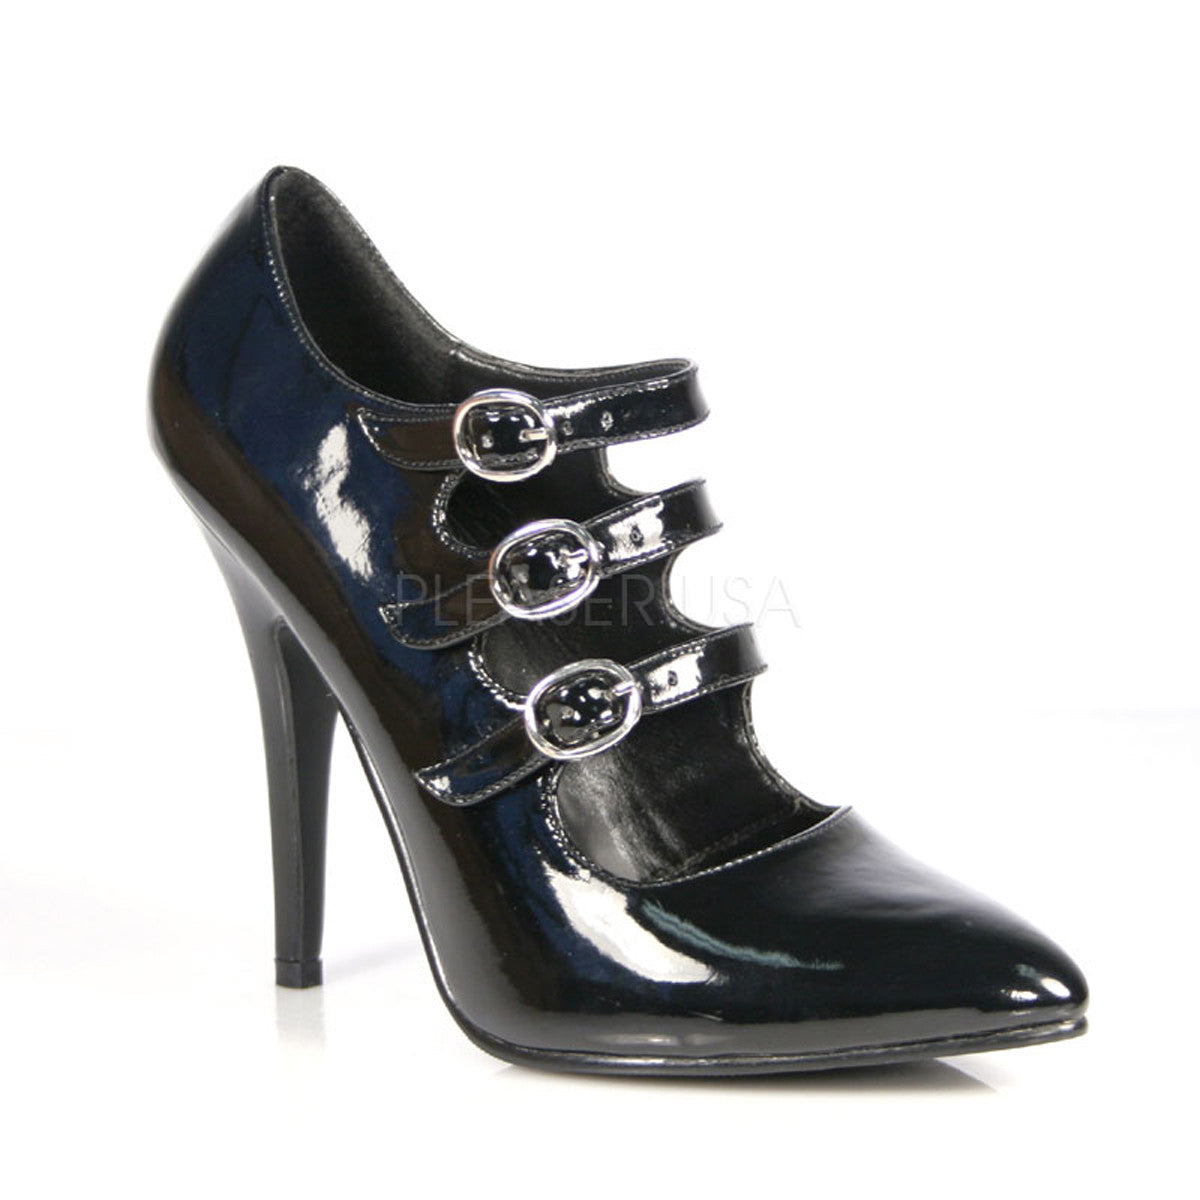 PLEASER SEDUCE-453 Black Pat Mary Jane Pumps - Shoecup.com